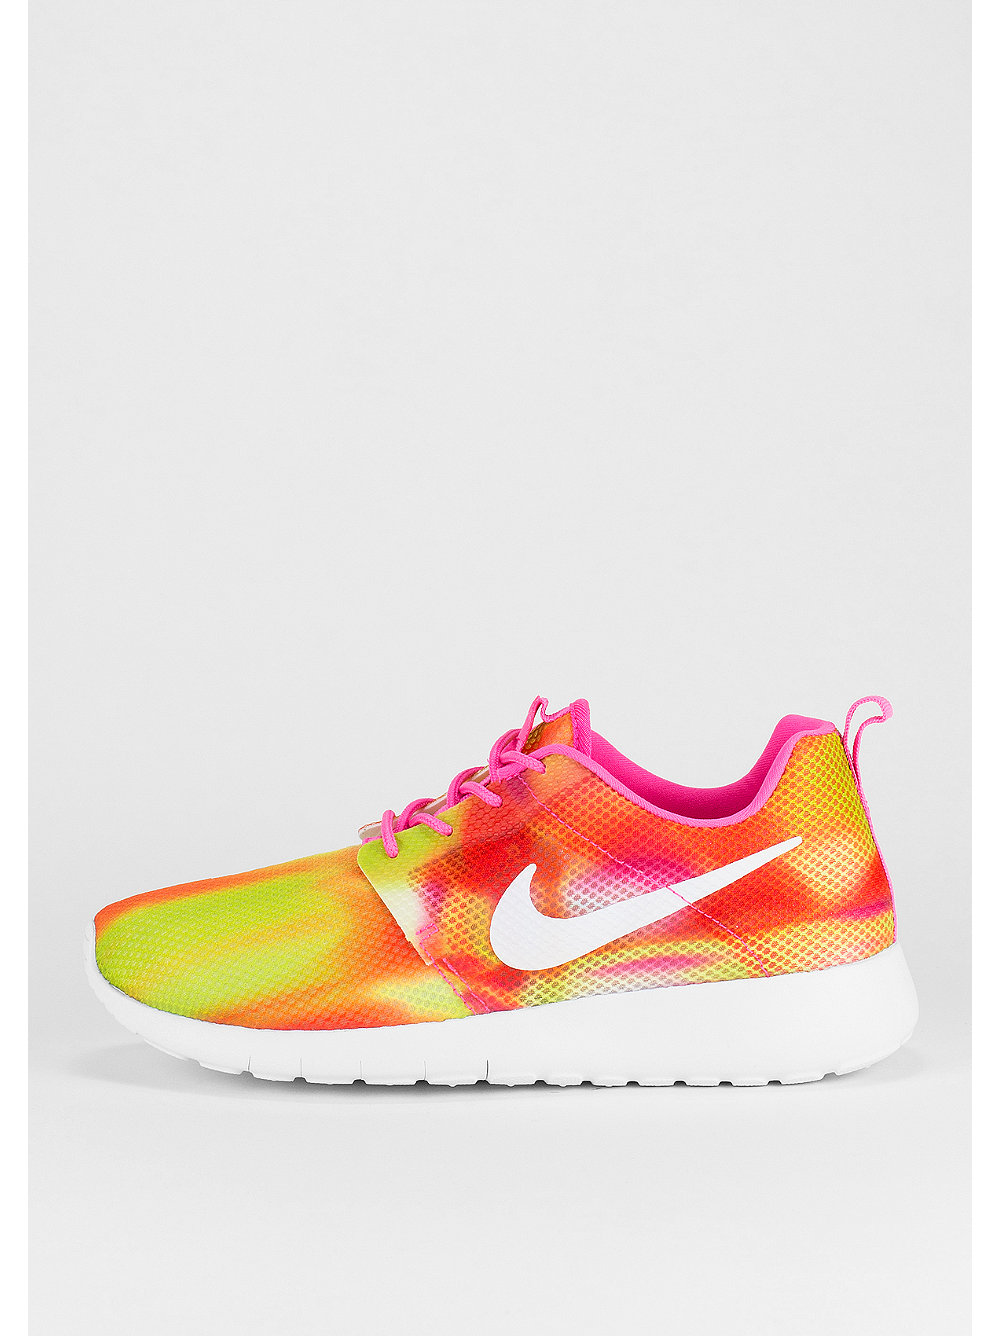 Nike Roshe One Flight Weight GS Schuhe pink pow-white 38